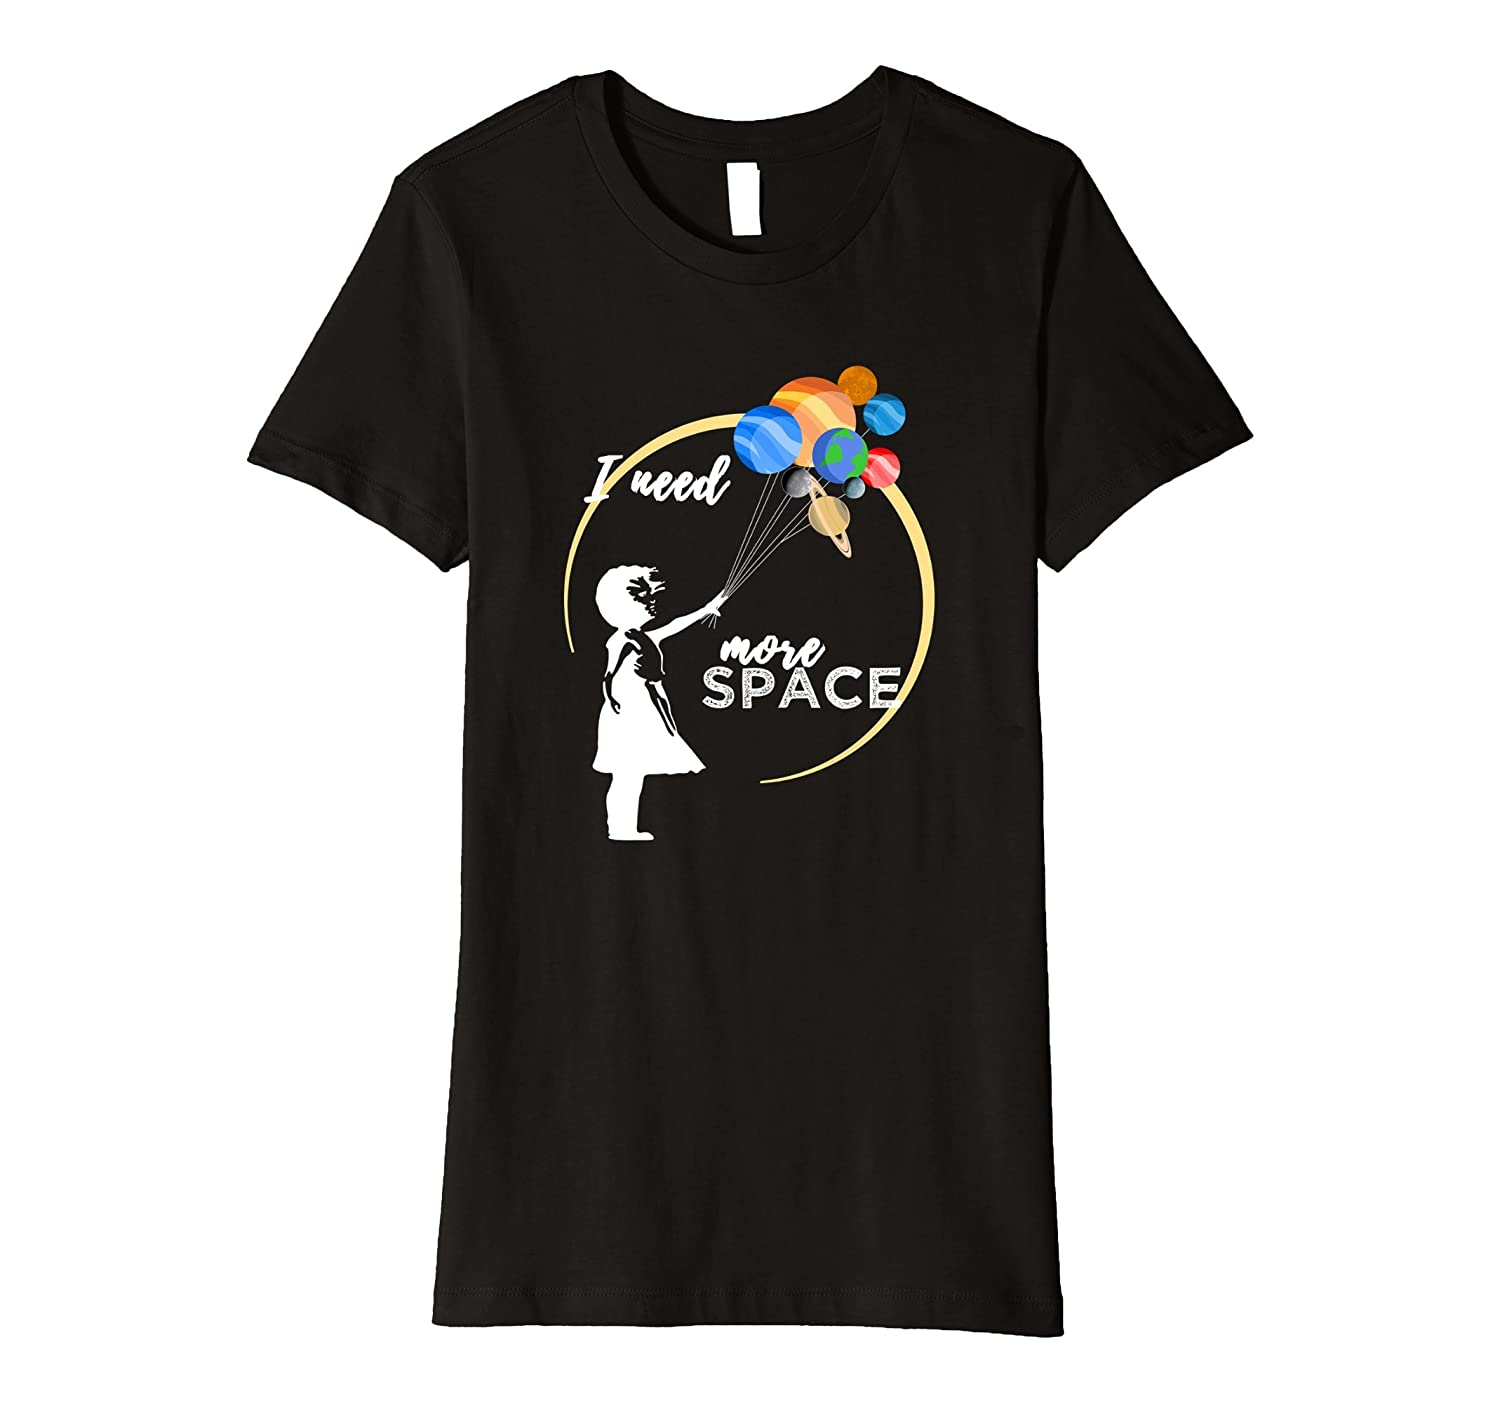 Solar system funny t-shirt I need more space tee